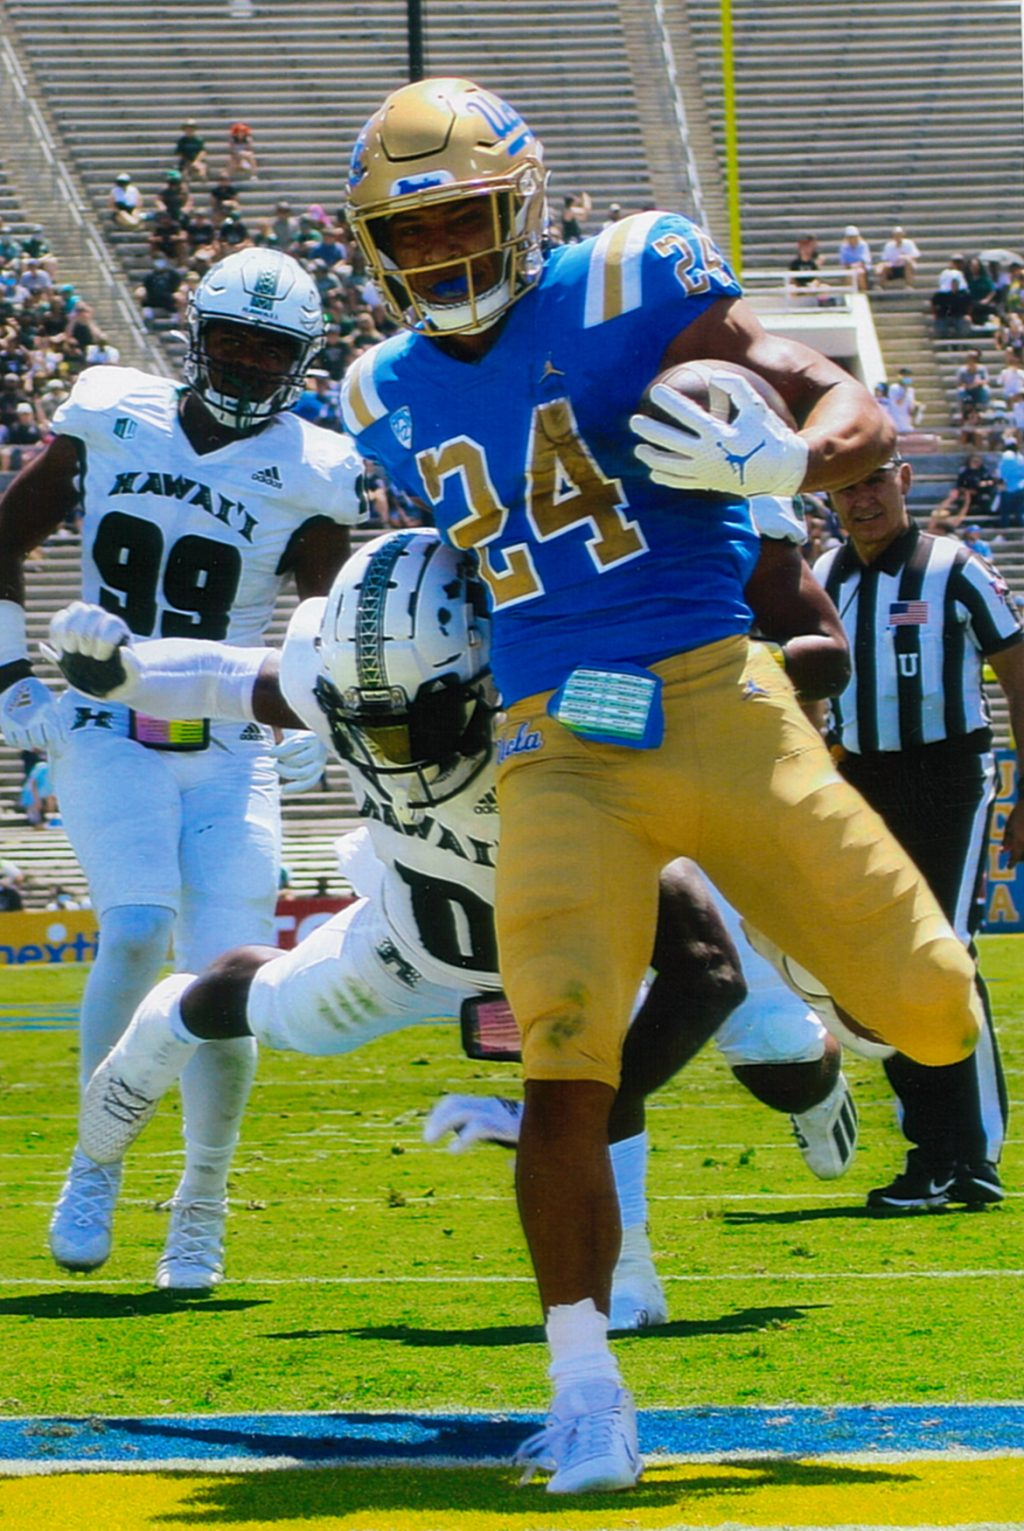 Bruins get off to a fast start